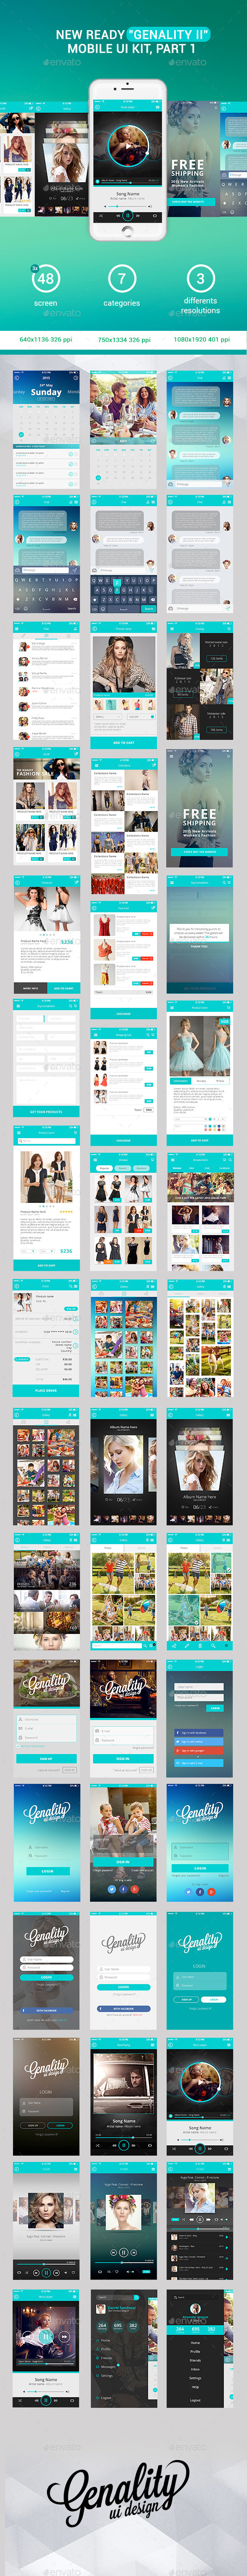 GraphicRiver New Ready Genality II Mobile UI Kit Part 1 11911430